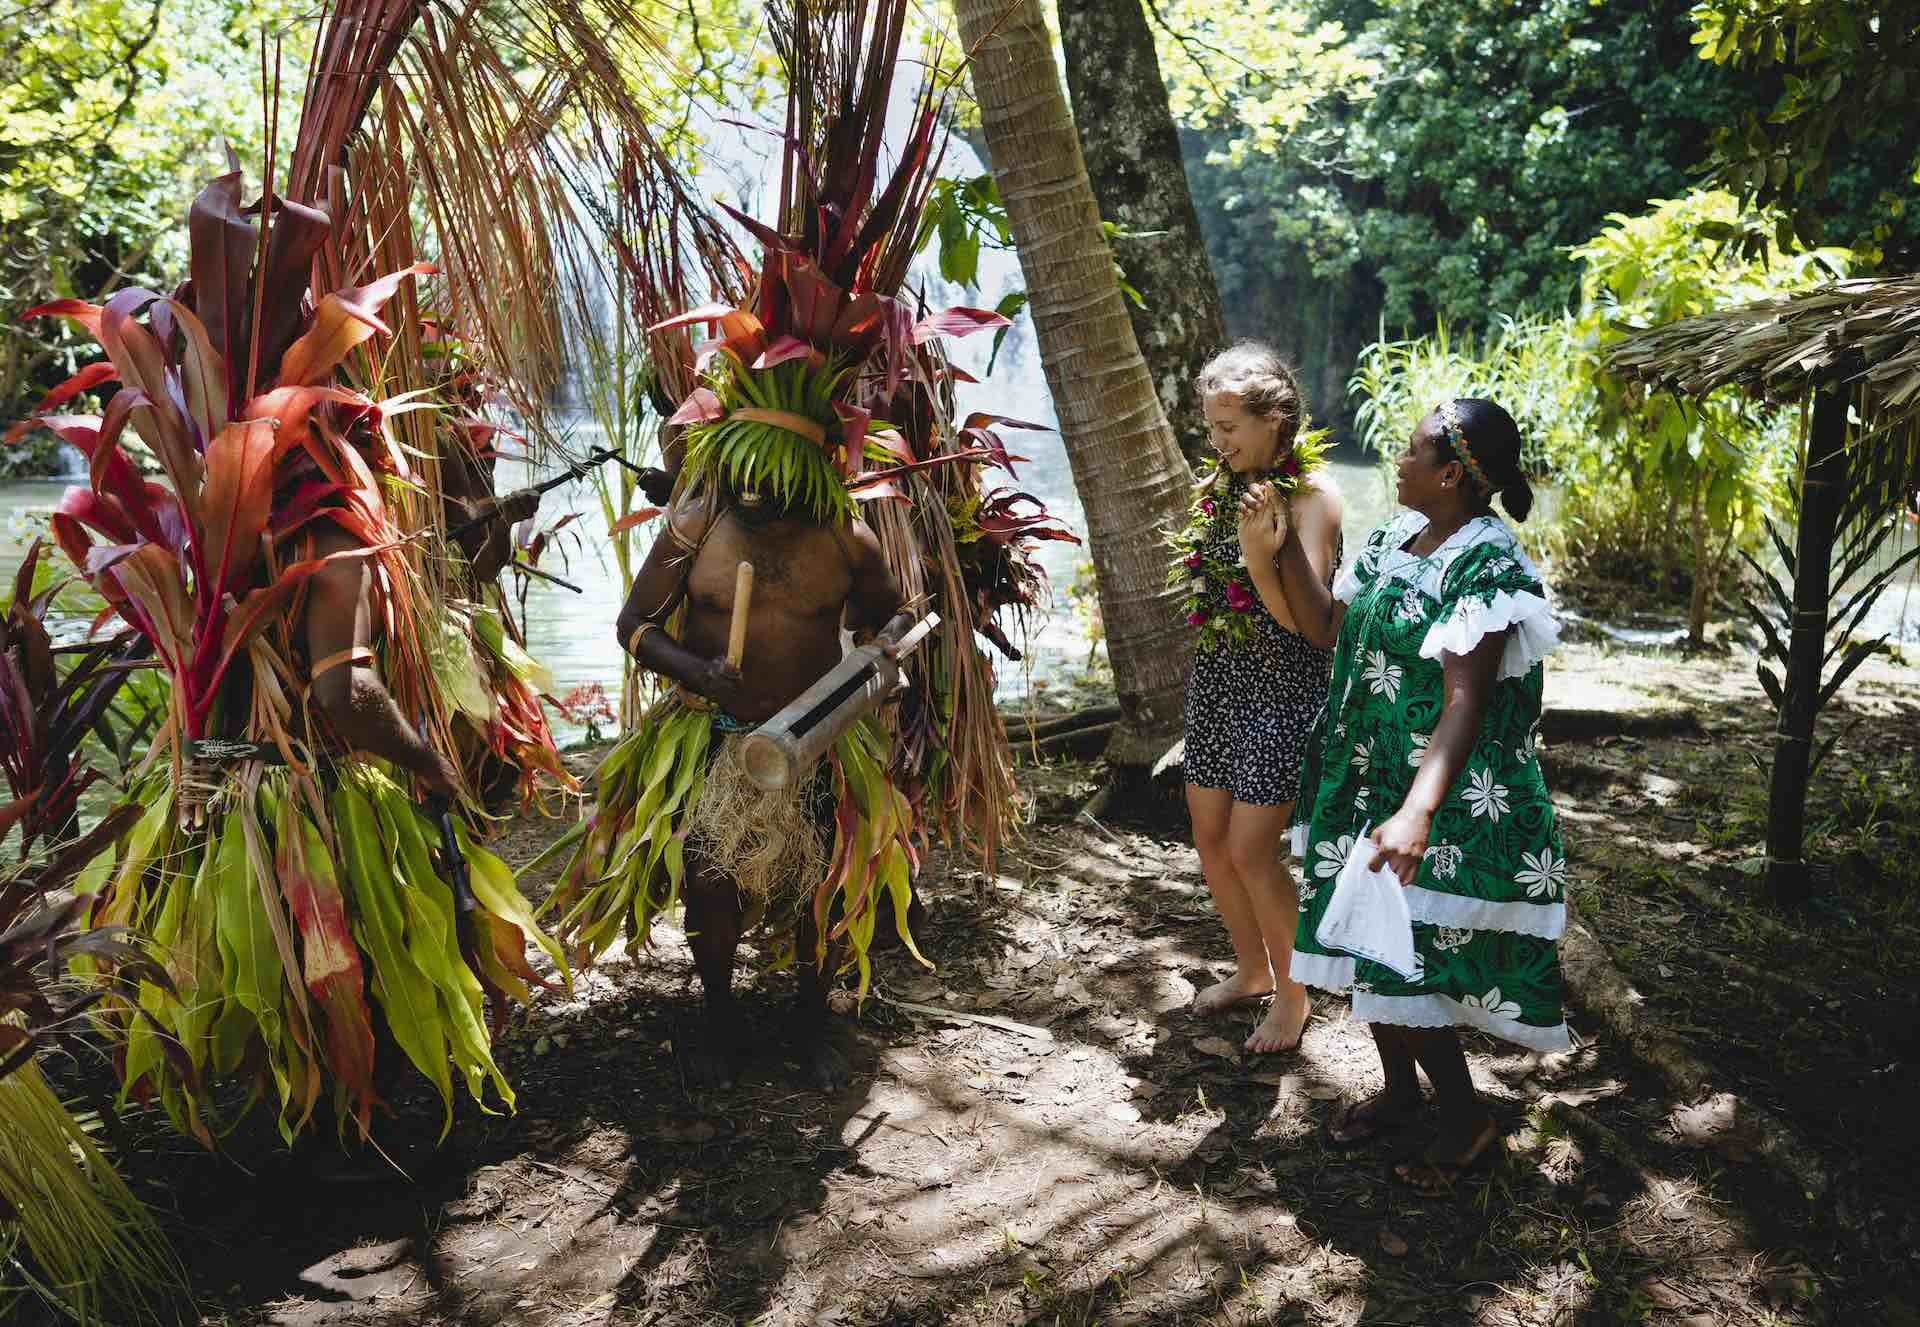 10 Things You Need To Know When Travelling Vanuatu's Outer Islands, Ruby Claire, photos by Ain Raadik and Ben Savage, custom dress, dancing, palm trees, women, Maewo - Naone falls arrival dance